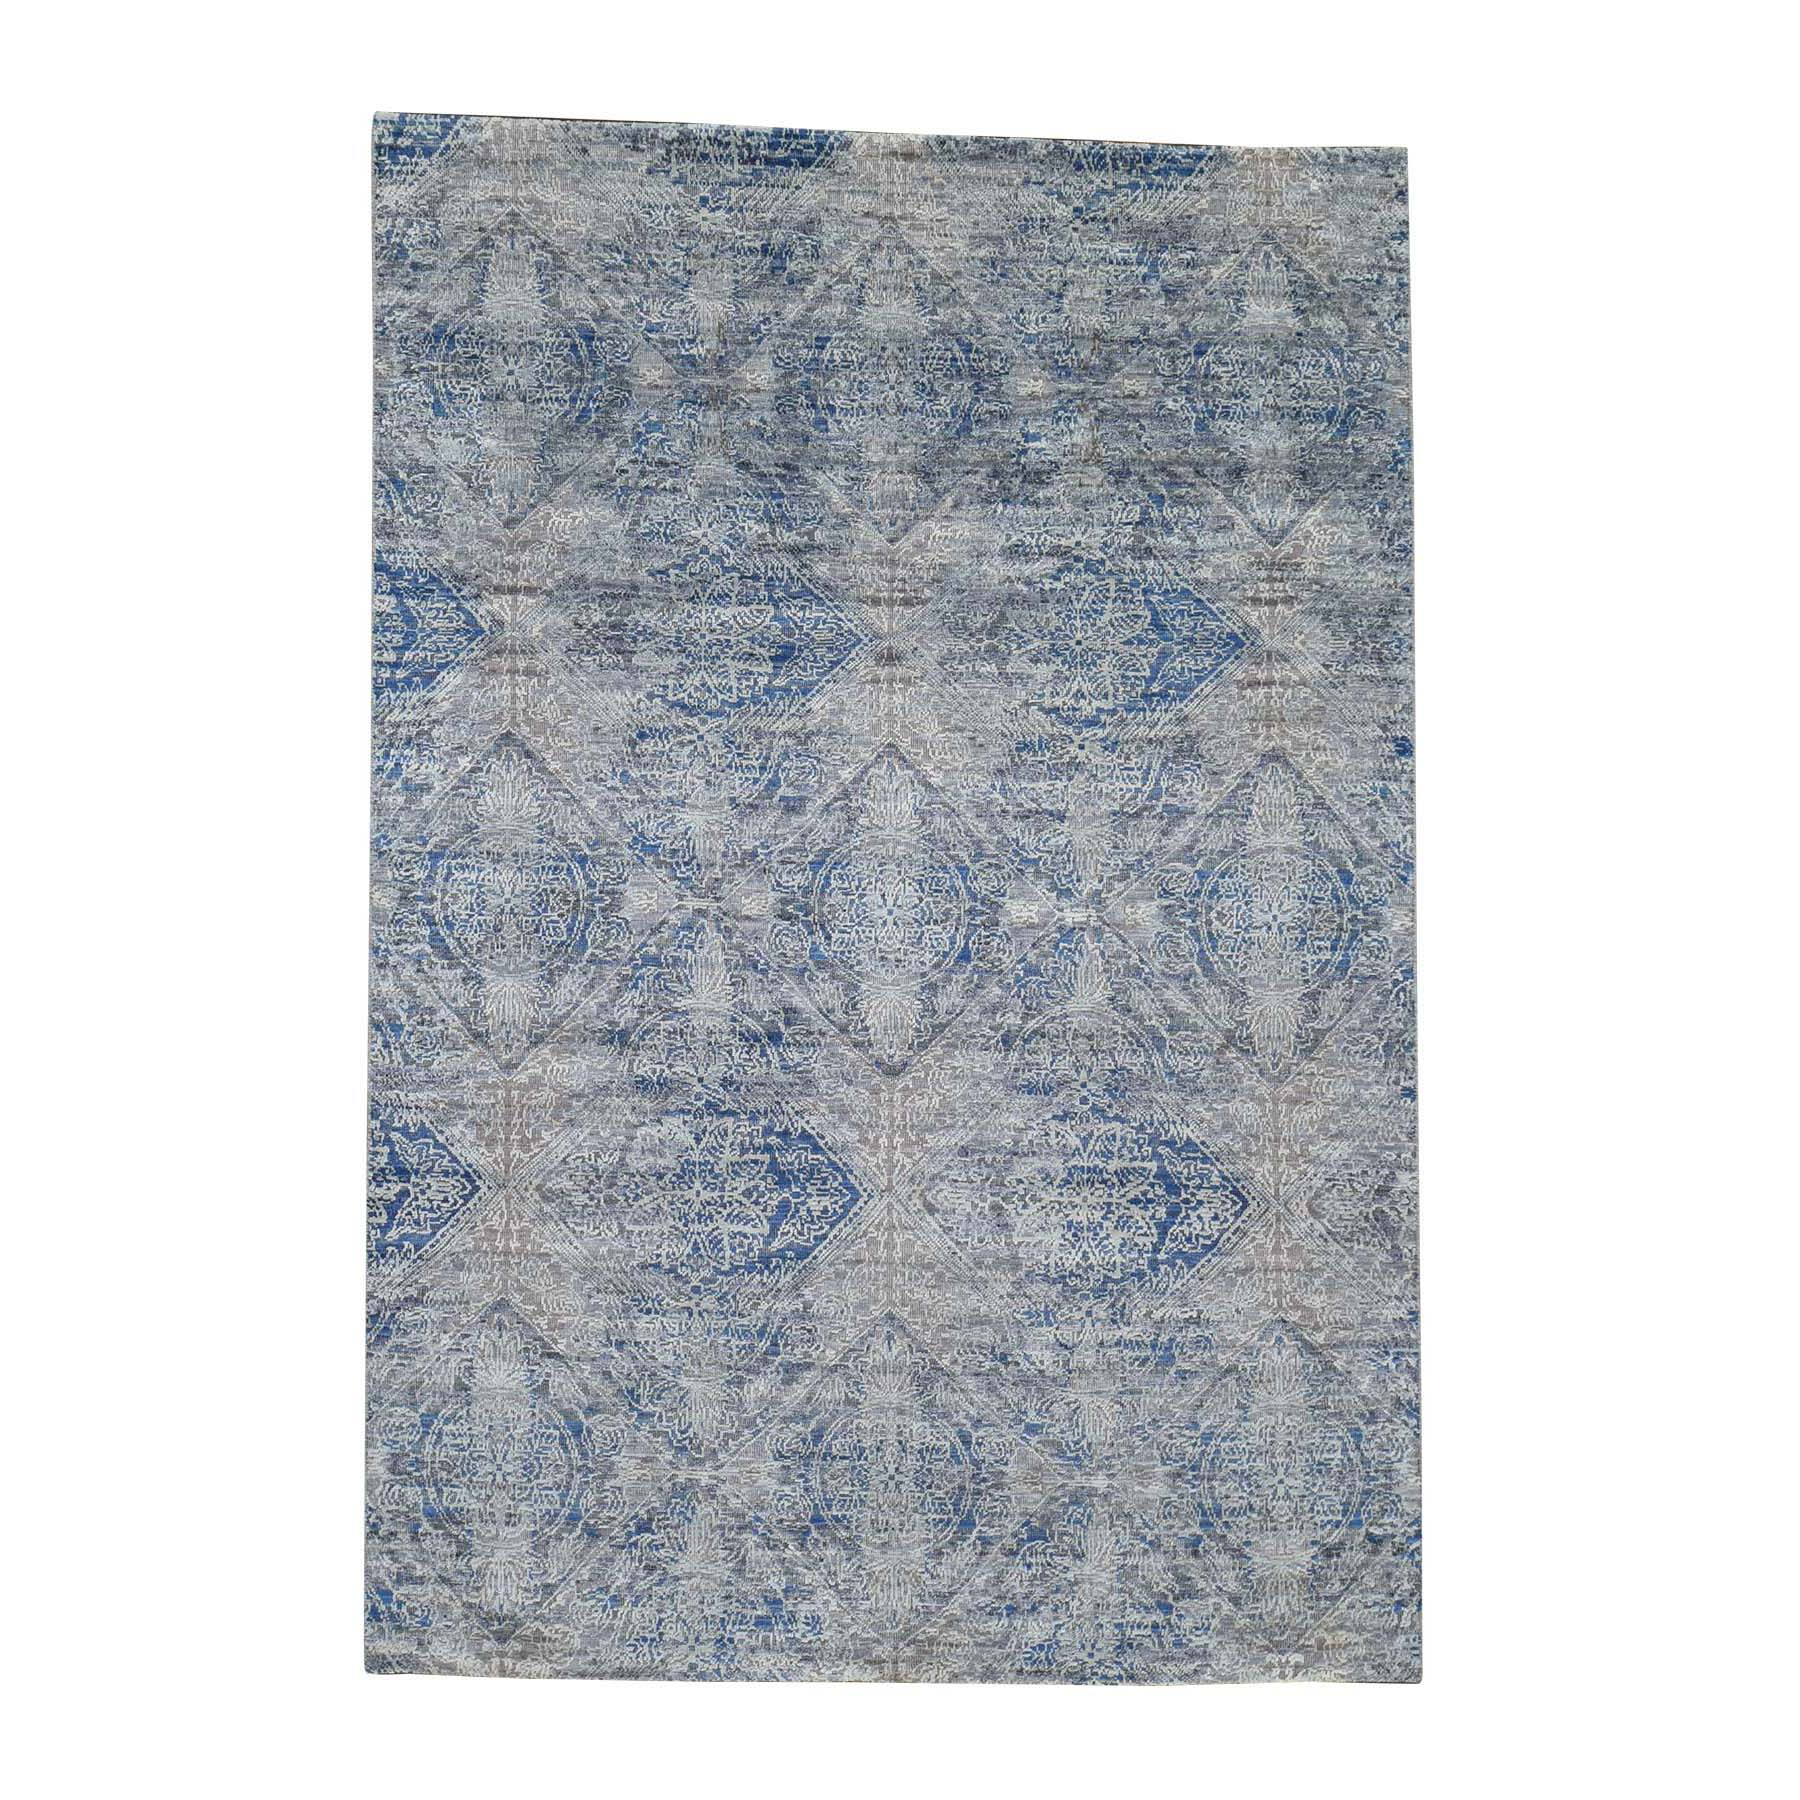 "4'9""x7' ERASED ROSSETS,Silk With Textured Wool Denim BluE Hand-Knotted Oriental Rug"